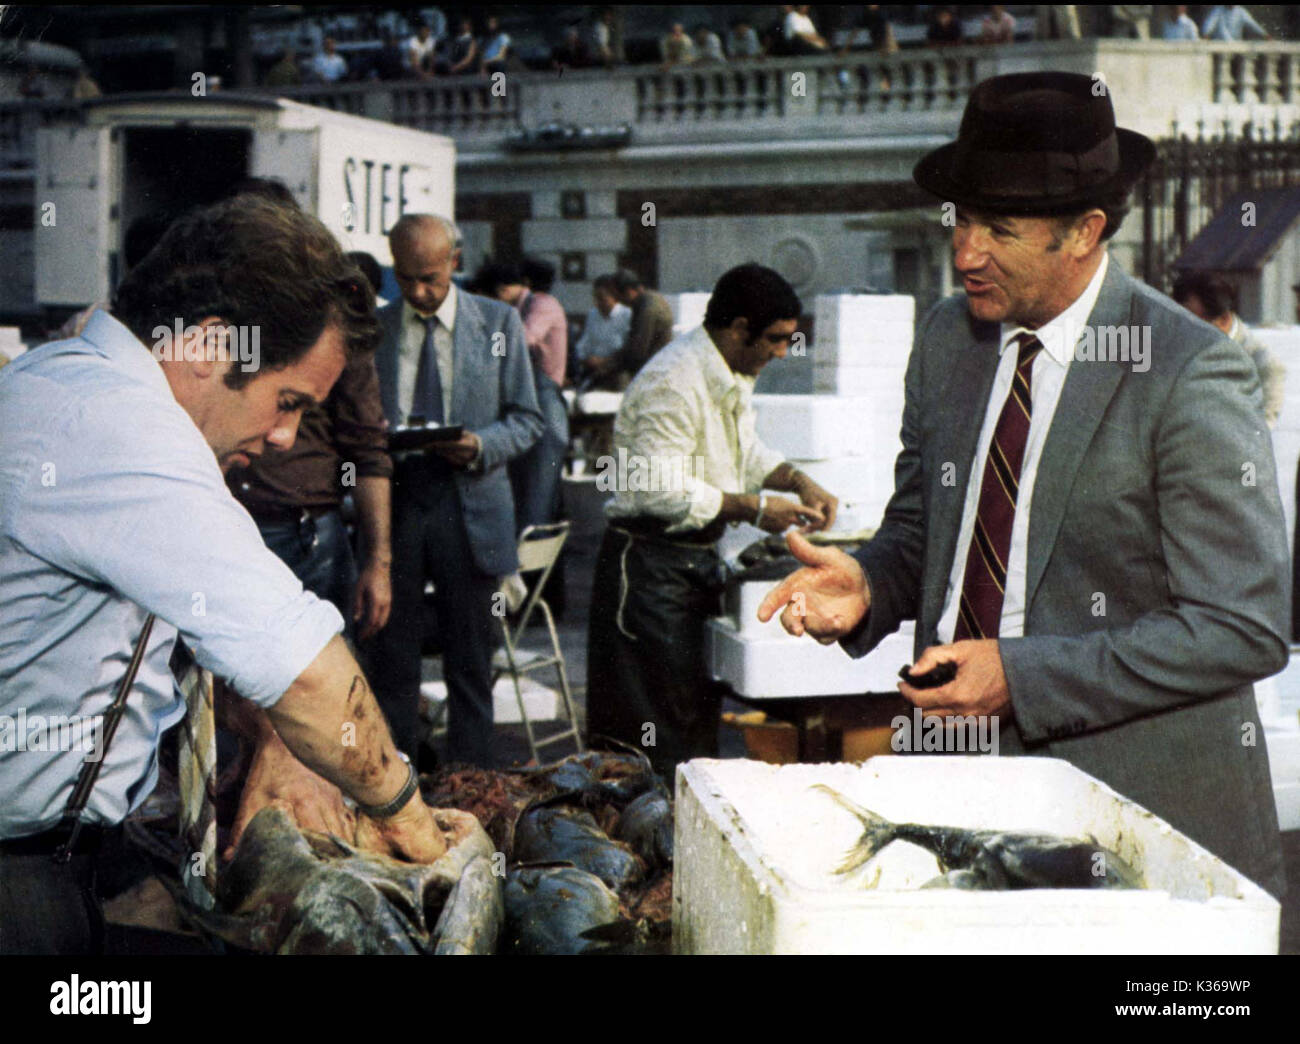 880a8803f70 FRENCH CONNECTION 2 GENE HACKMAN Date: 1975 Stock Photo: 156876770 ...